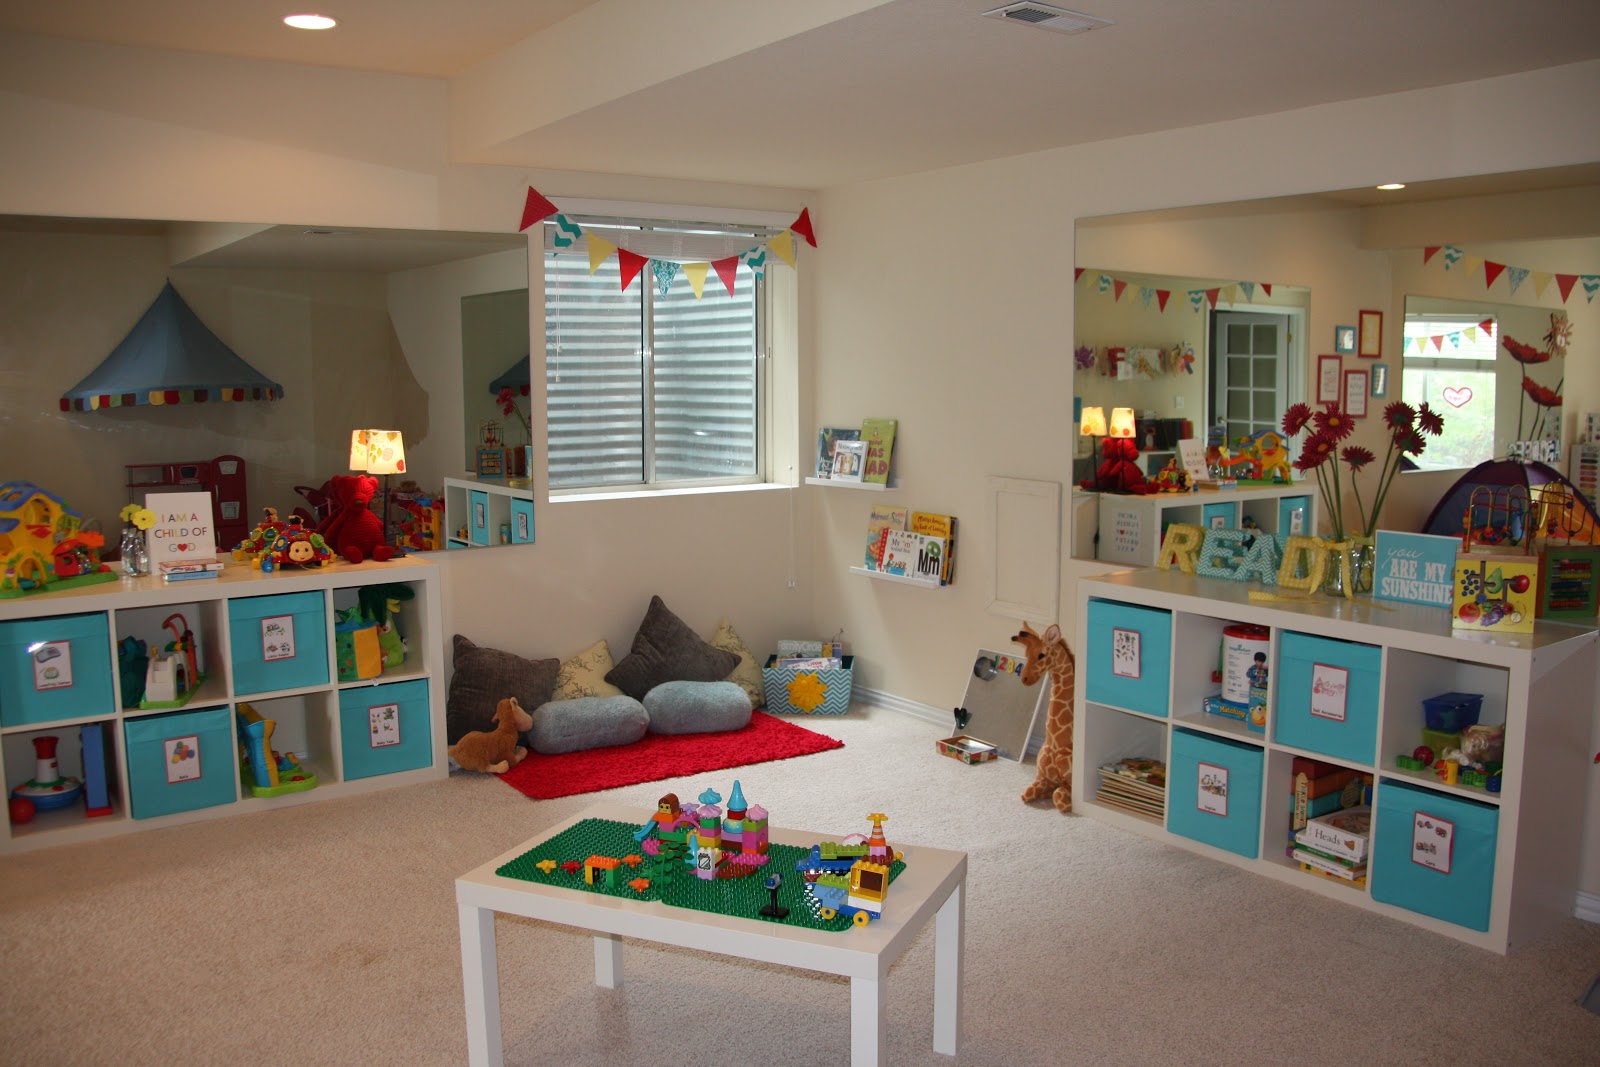 Keeping Up With The Joneses: Our New Playroom